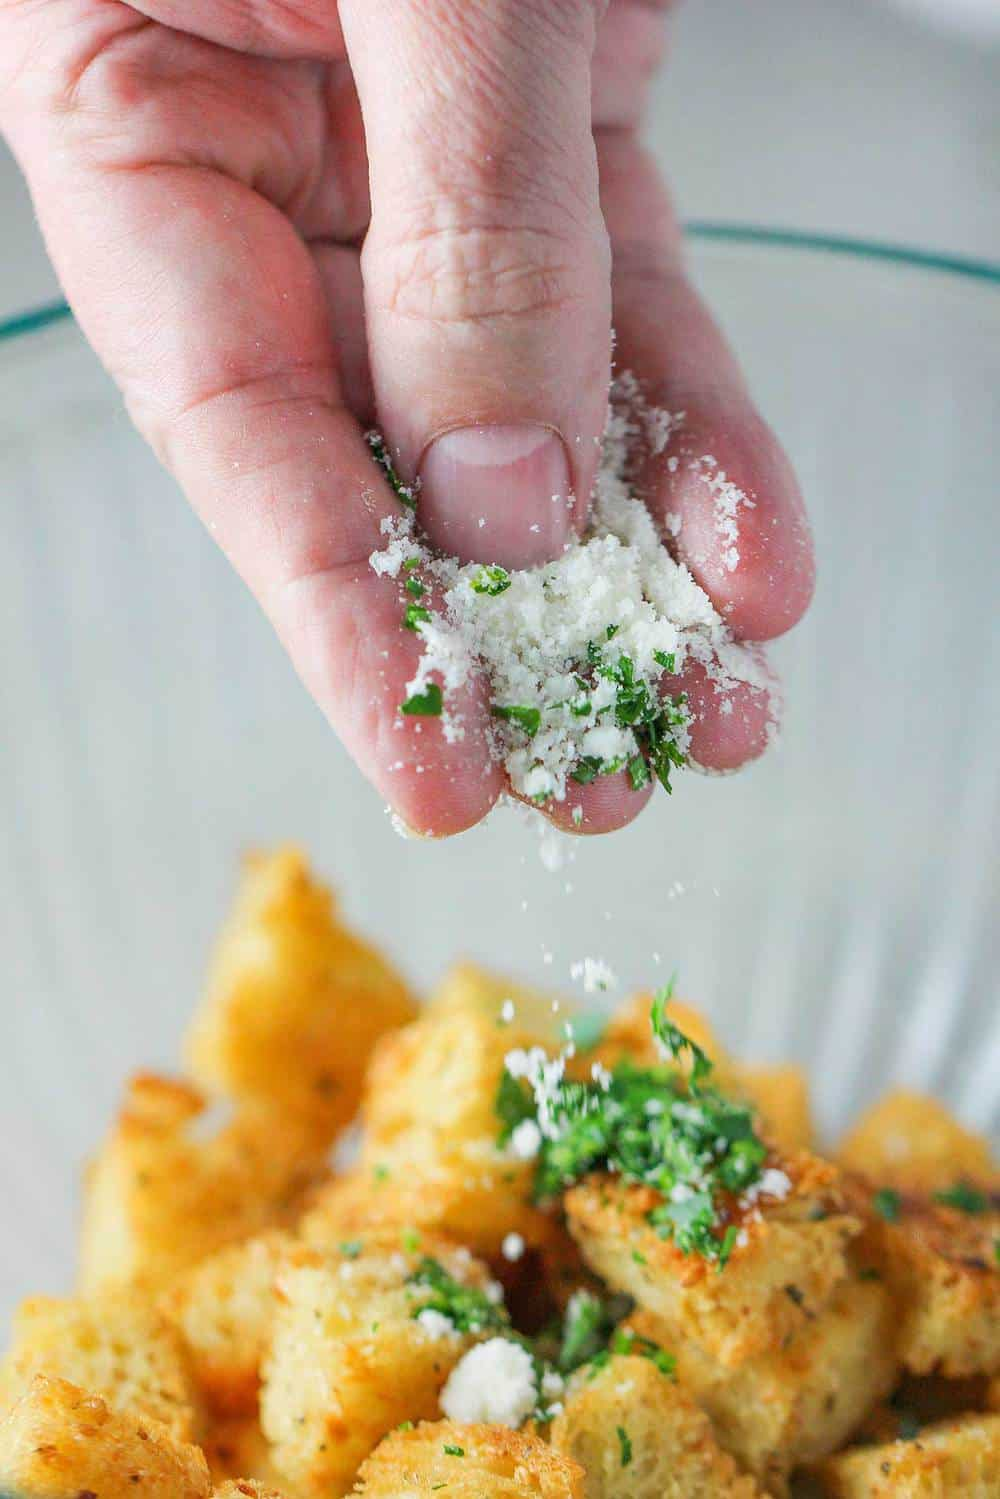 A hand sprinkling cheese and herbs onto baked croutons.